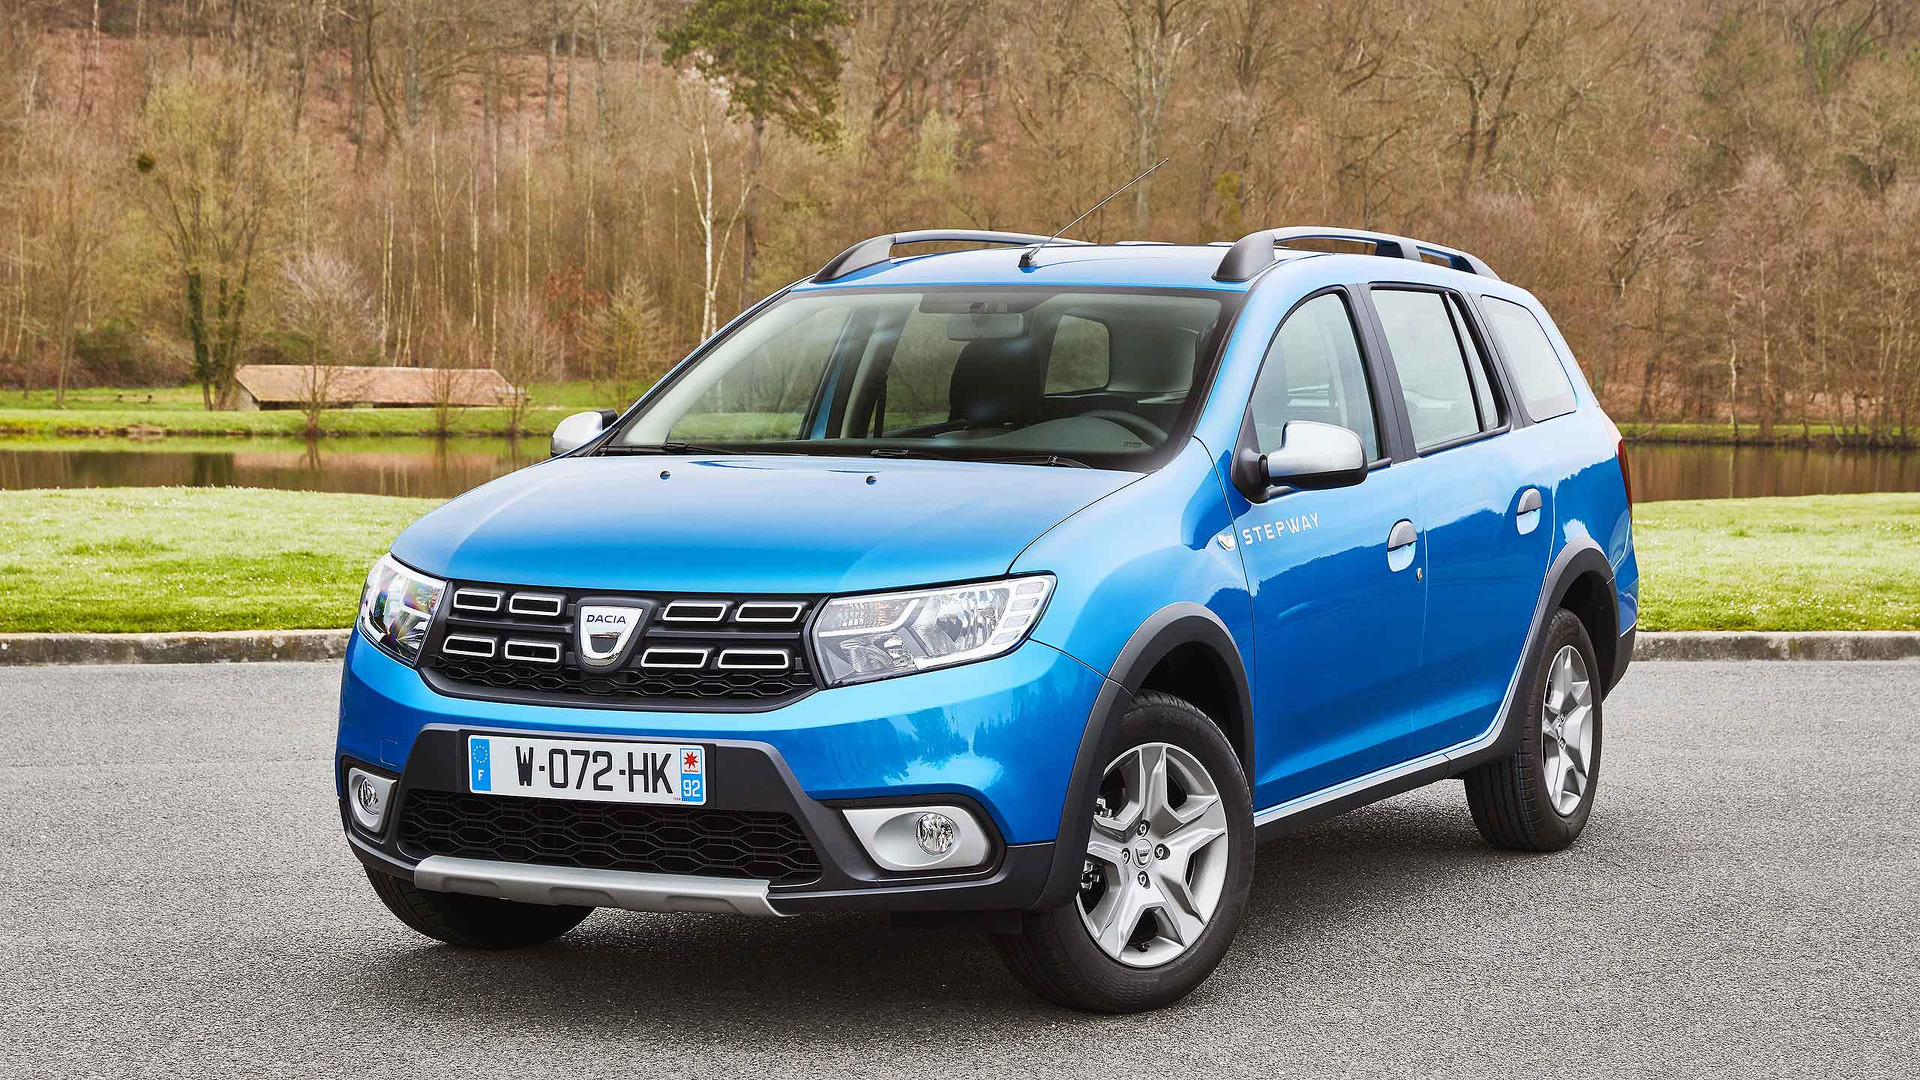 dacia logan mcv stepway news and reviews. Black Bedroom Furniture Sets. Home Design Ideas